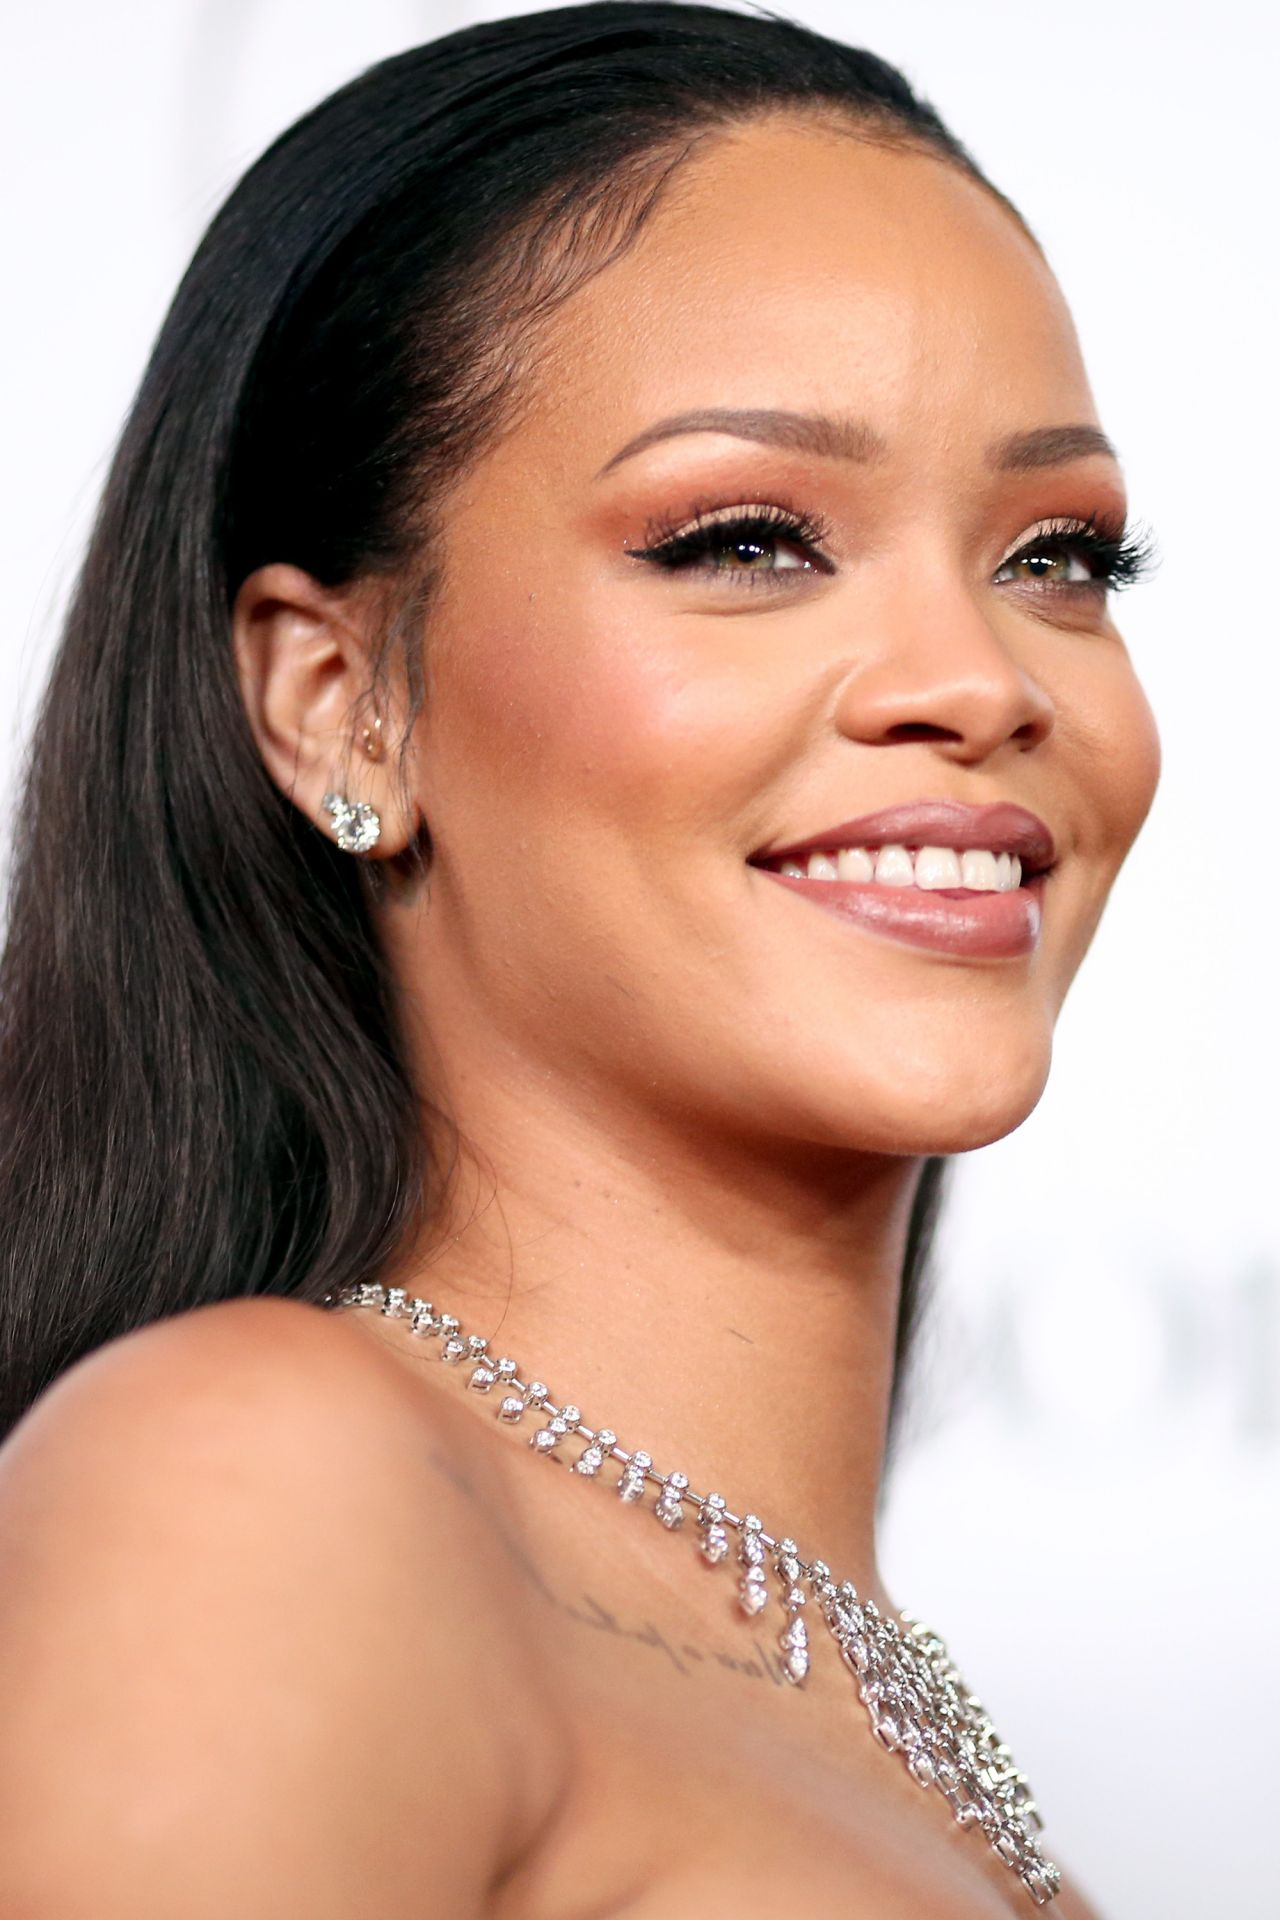 Rihanna 2015 Diamond Ball In Santa Monica 12 10 2015